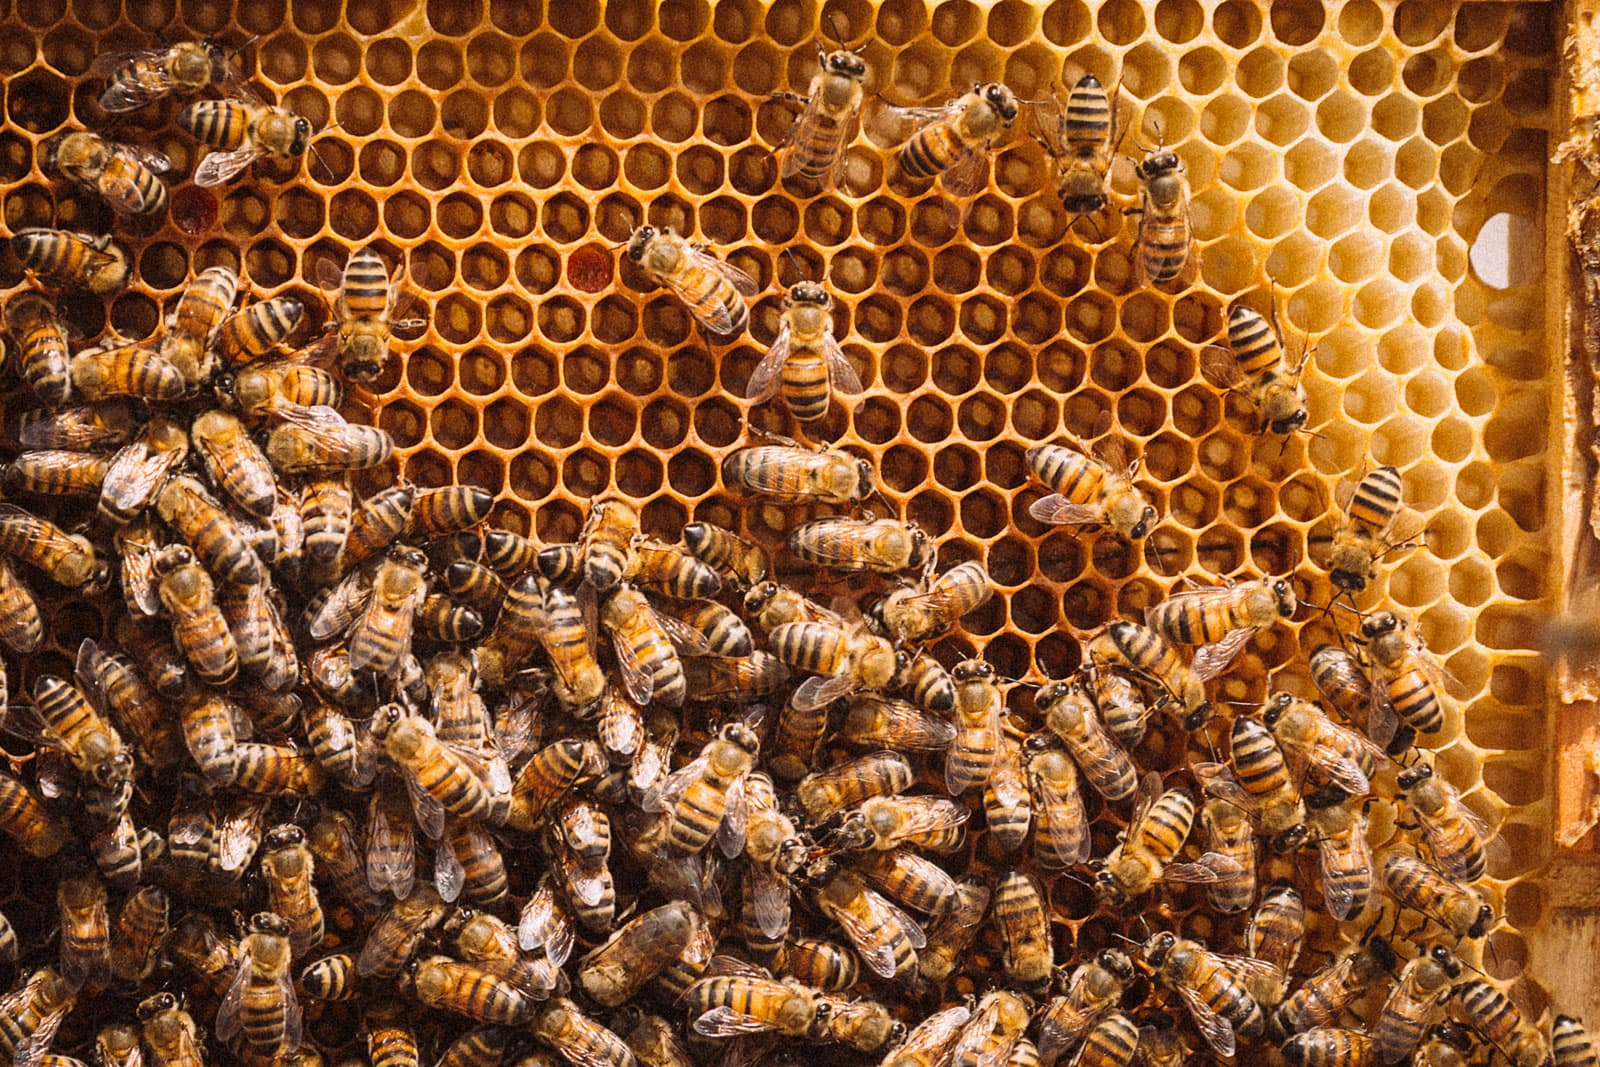 close up of bees